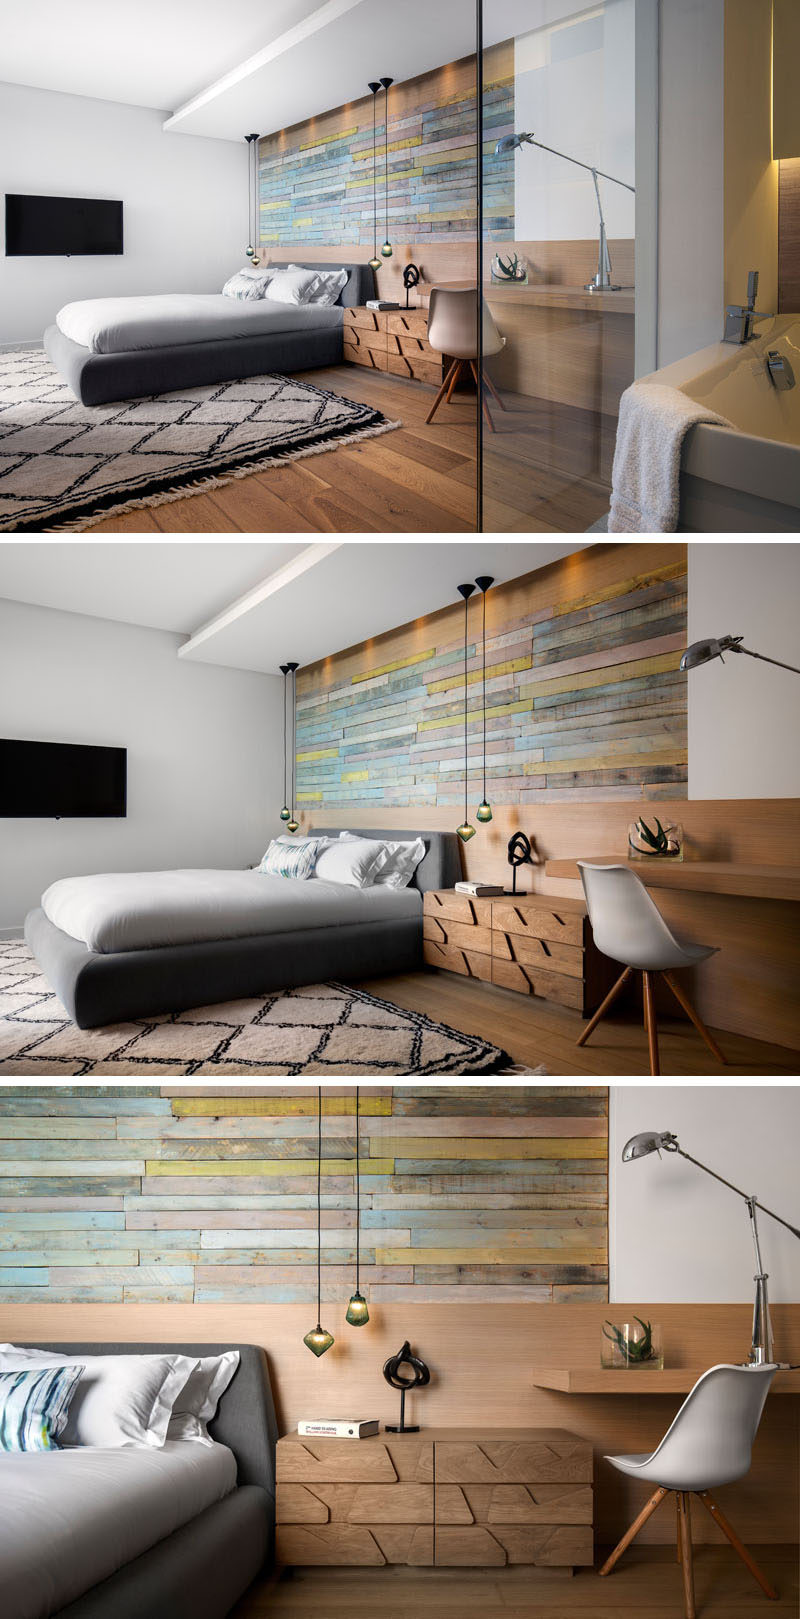 In this modern bedroom, an accent wall has been created using reclaimed timber cladding, while a built-in wood desk is combined with the headboard. An en-suite bathroom sits off to the side and is enclosed within glass frame. #WoodAccentWall #ModernBedroom #InteriorDesign